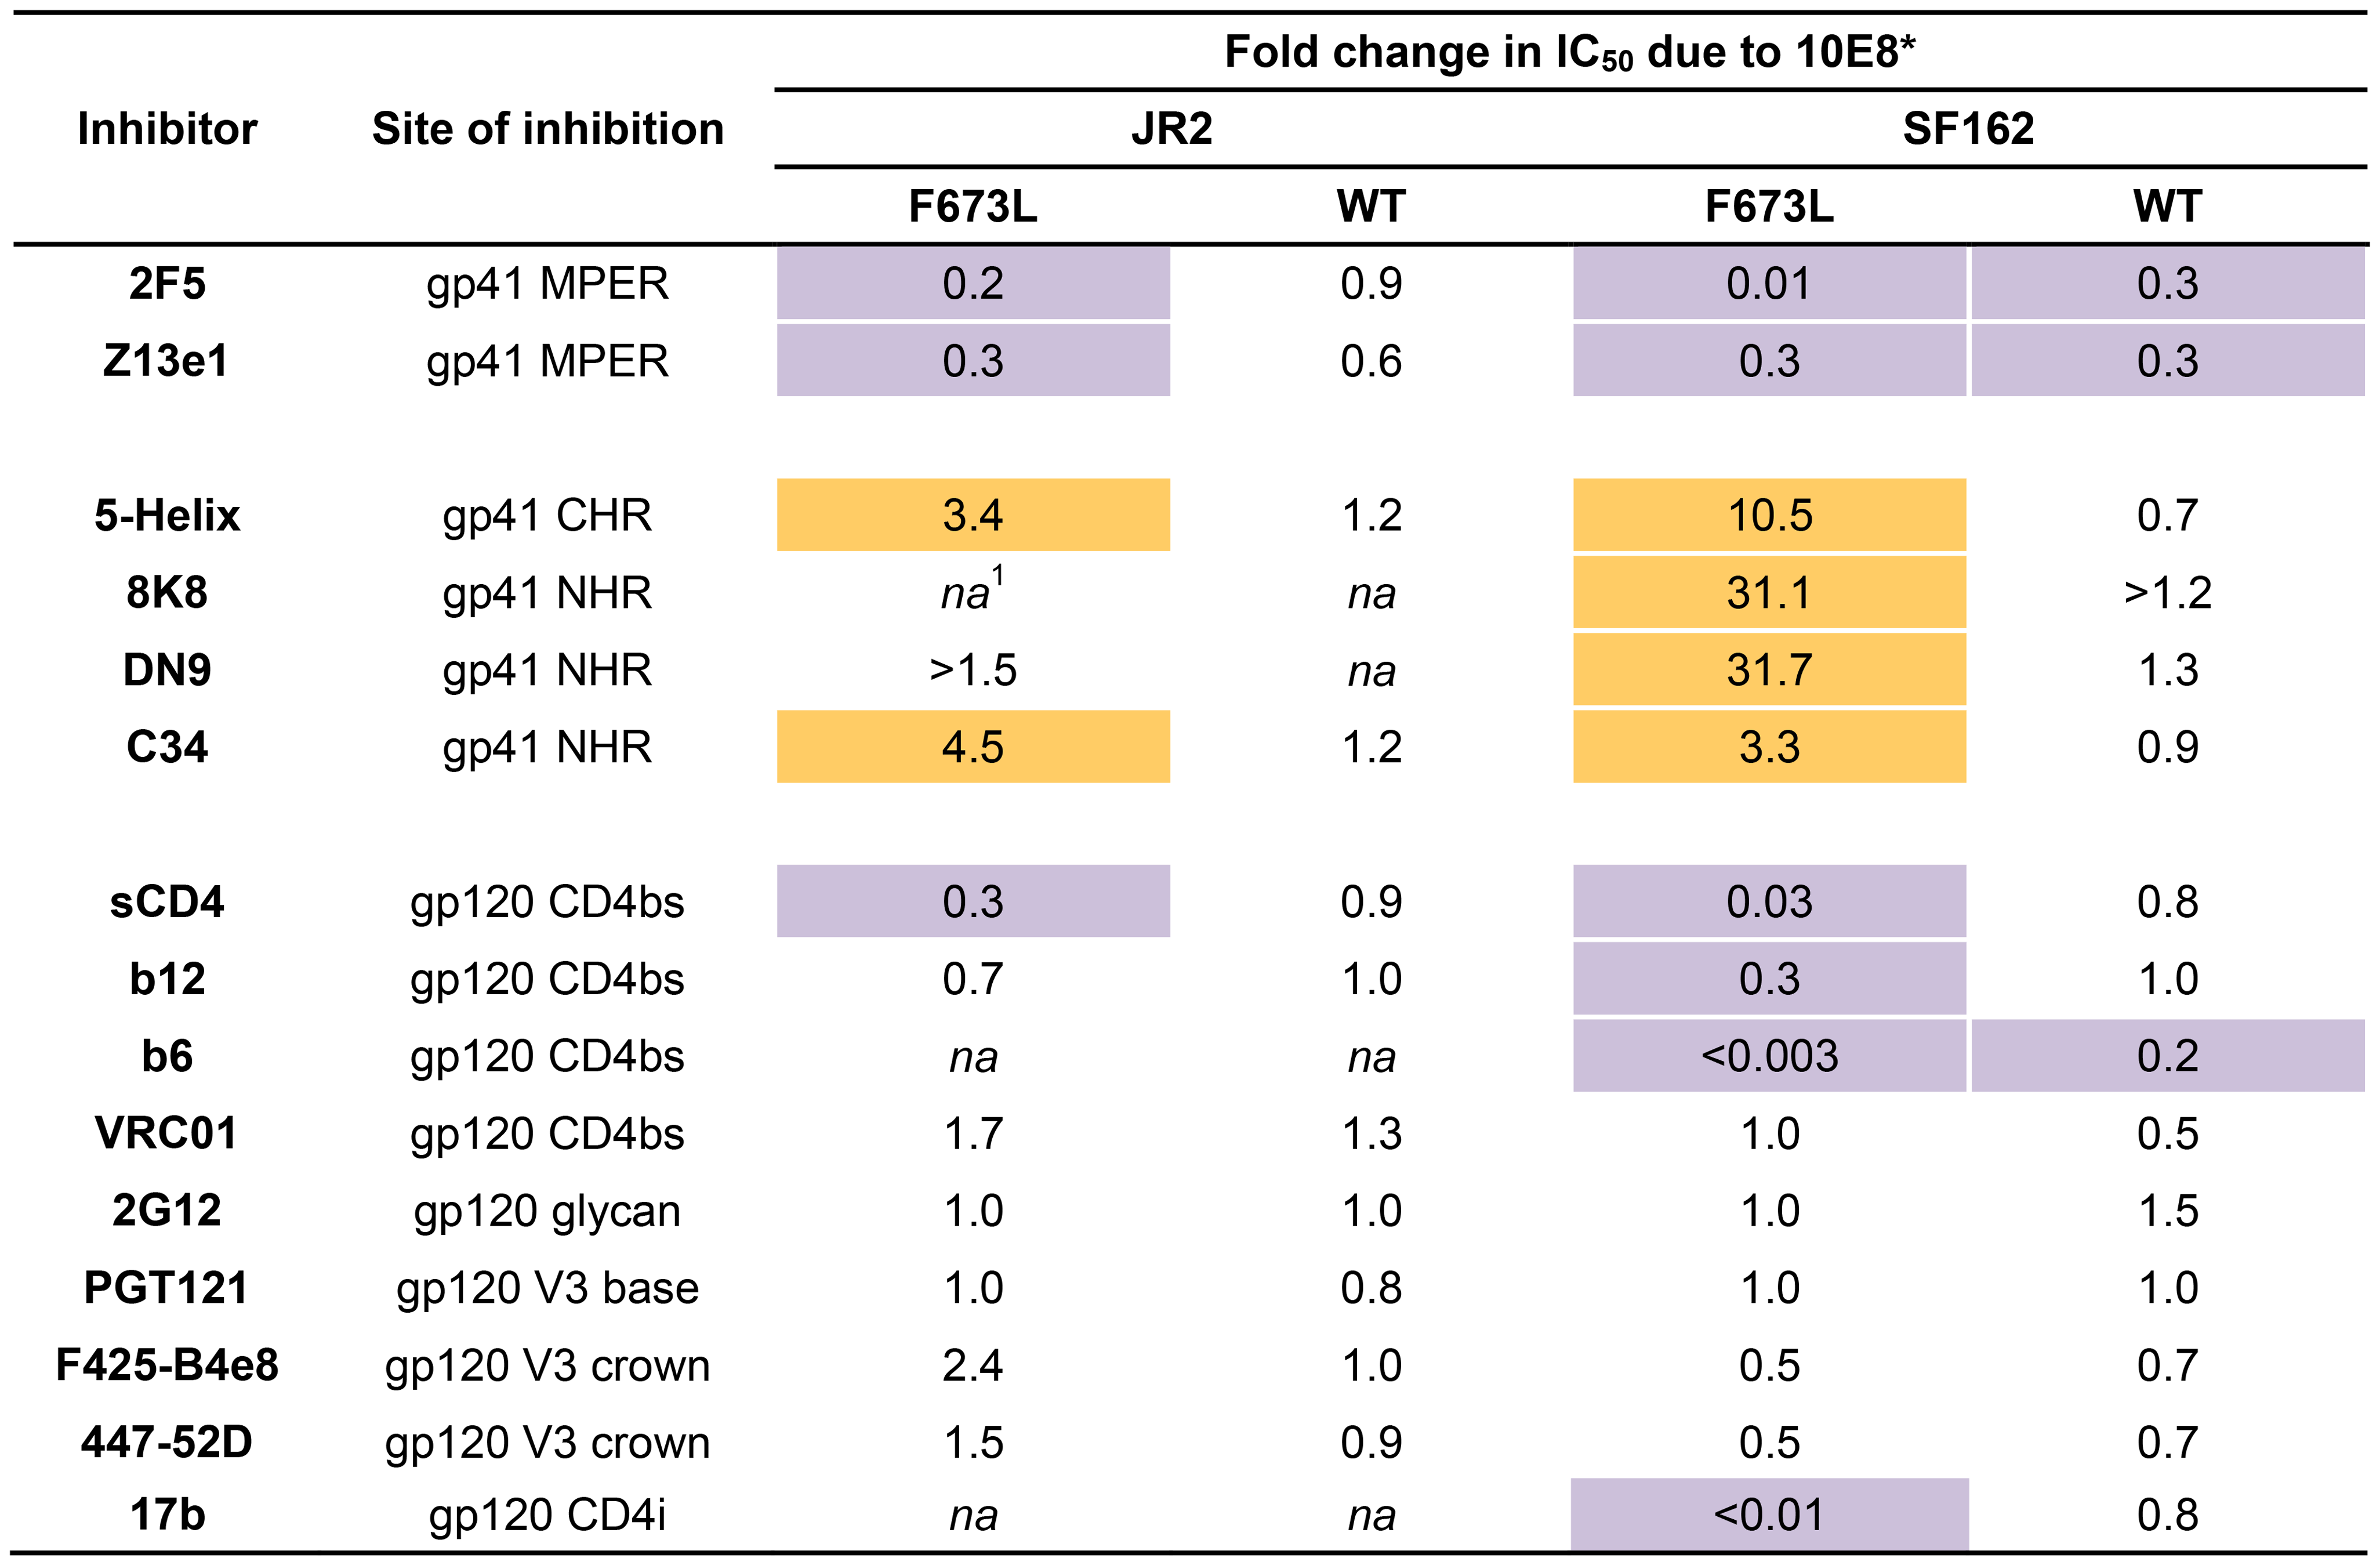 Effect of presence of 10E8 on the sensitivity of HIV-1 and corresponding F673L mutant to various ligands (IC<sub>50</sub>).